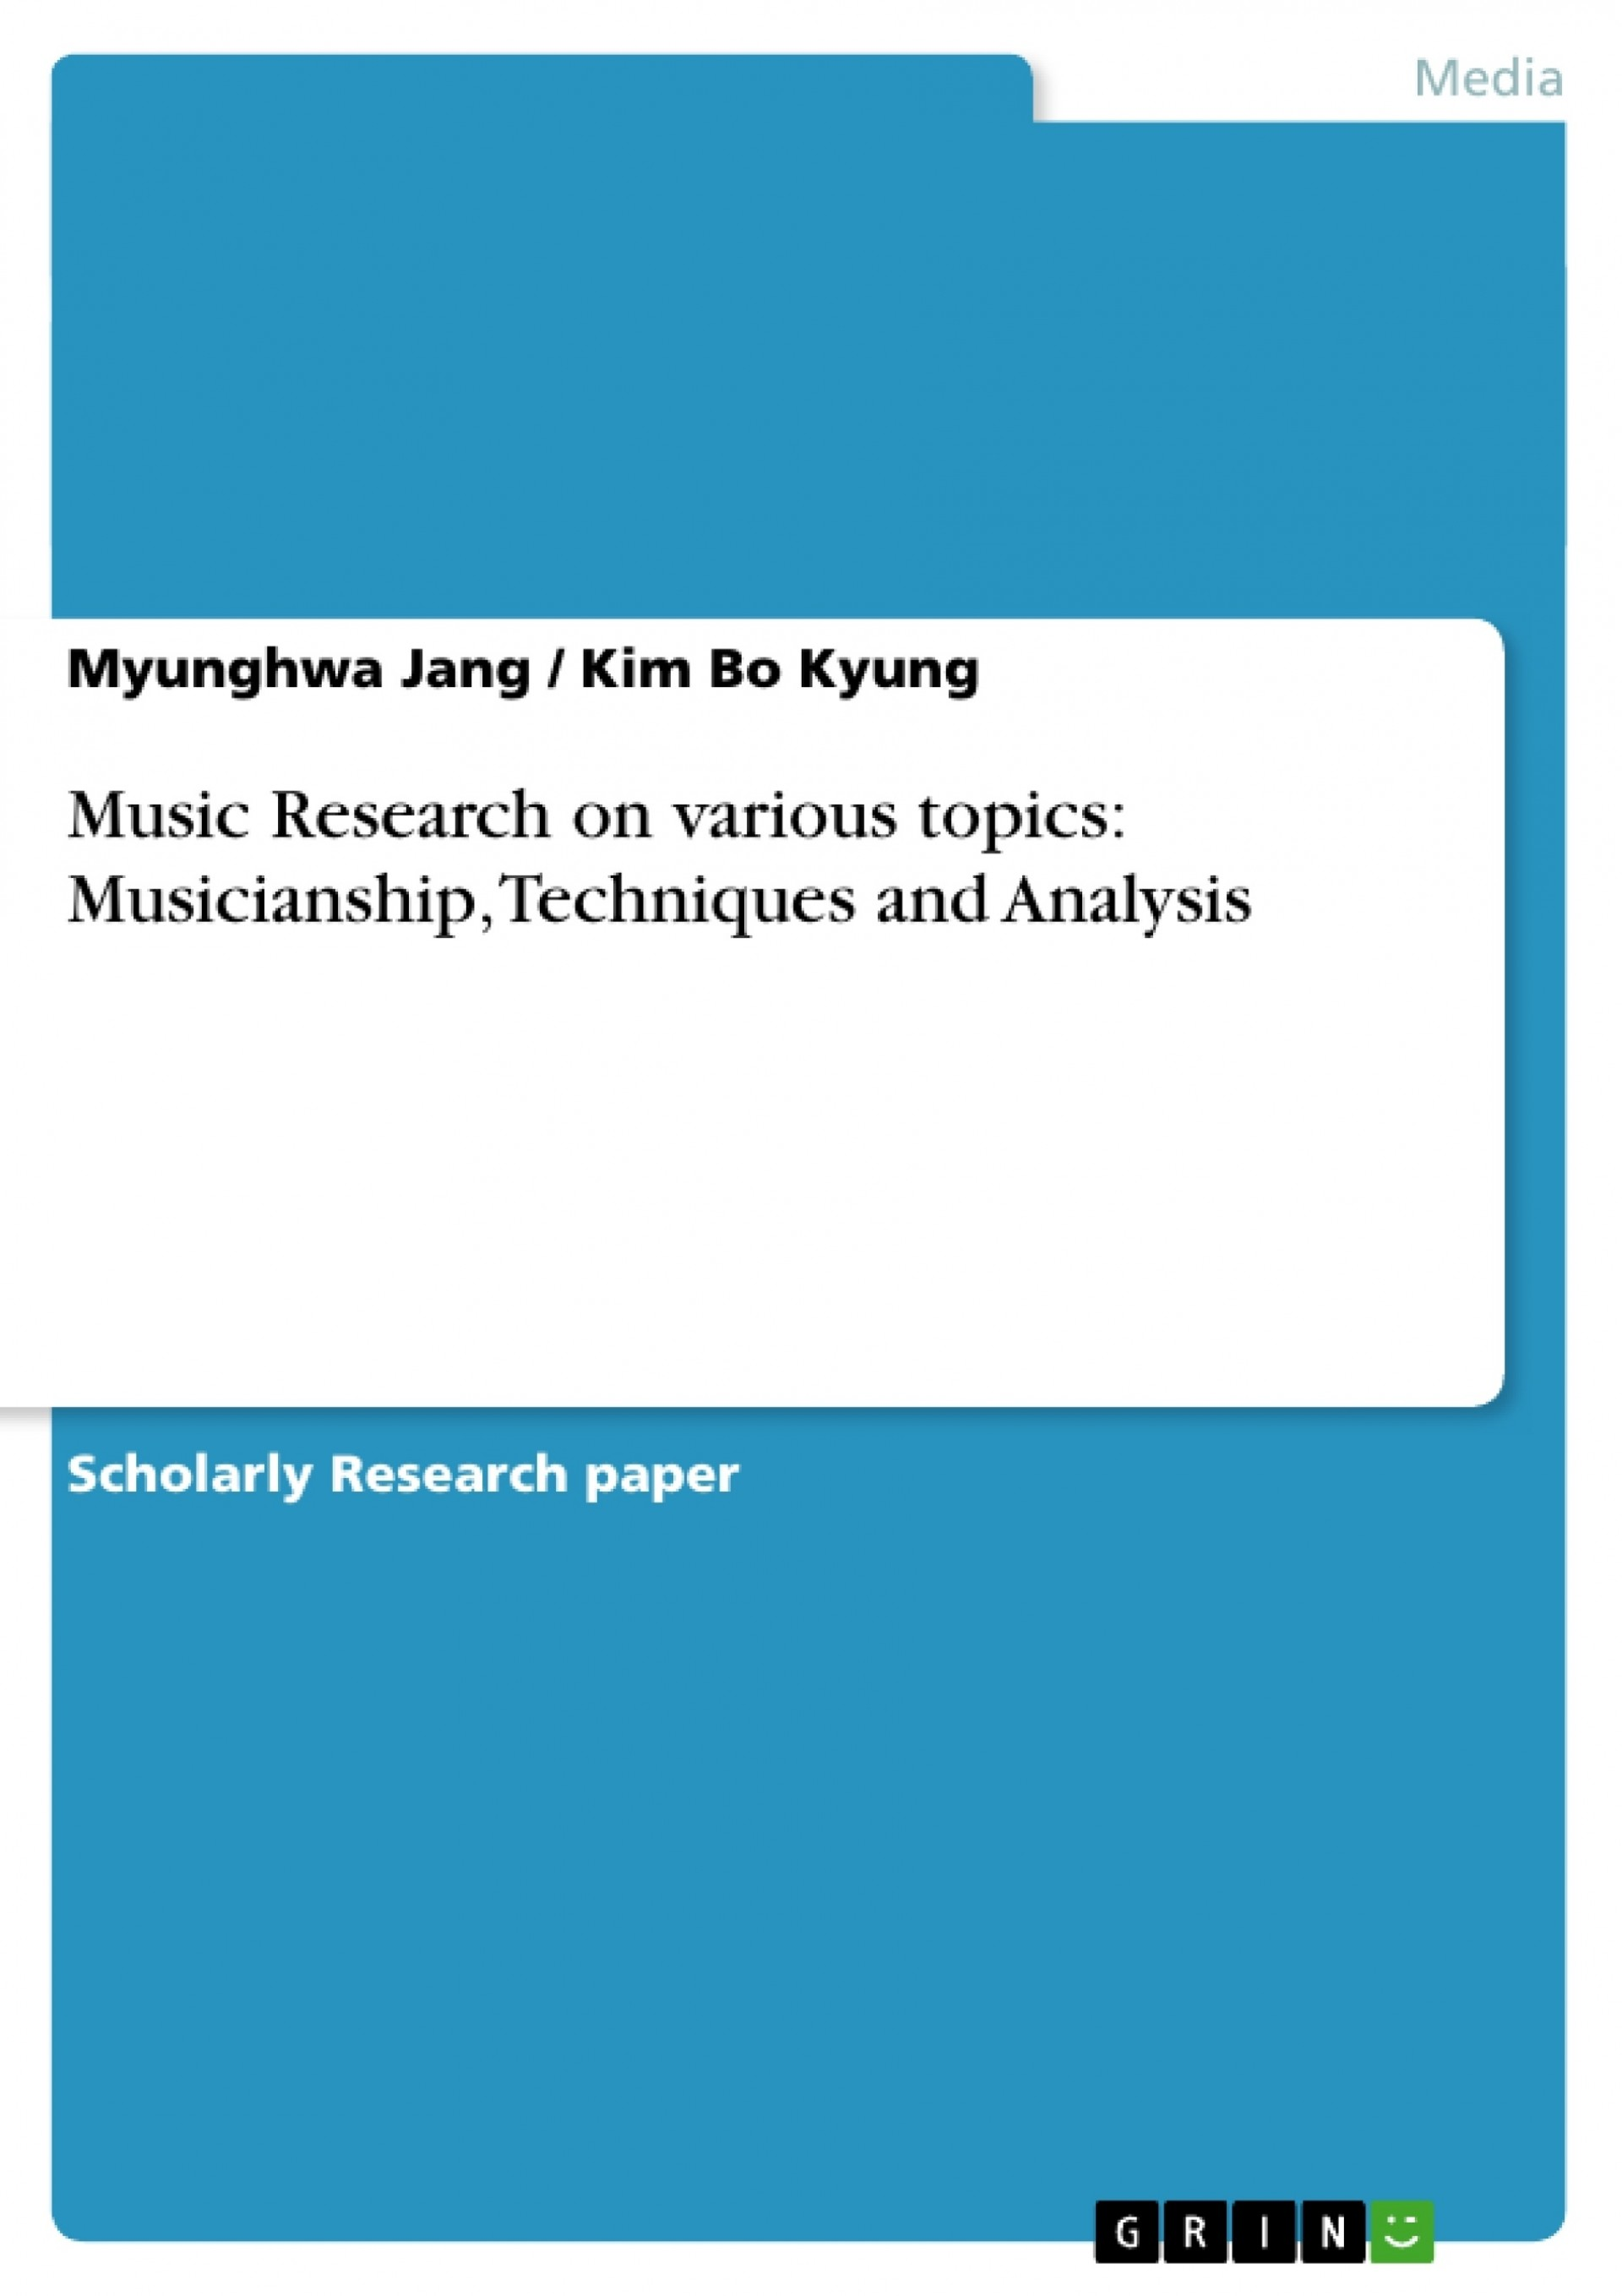 014 Research Paper Topics Music 208216 0 Imposing Education Classical Industry 1920